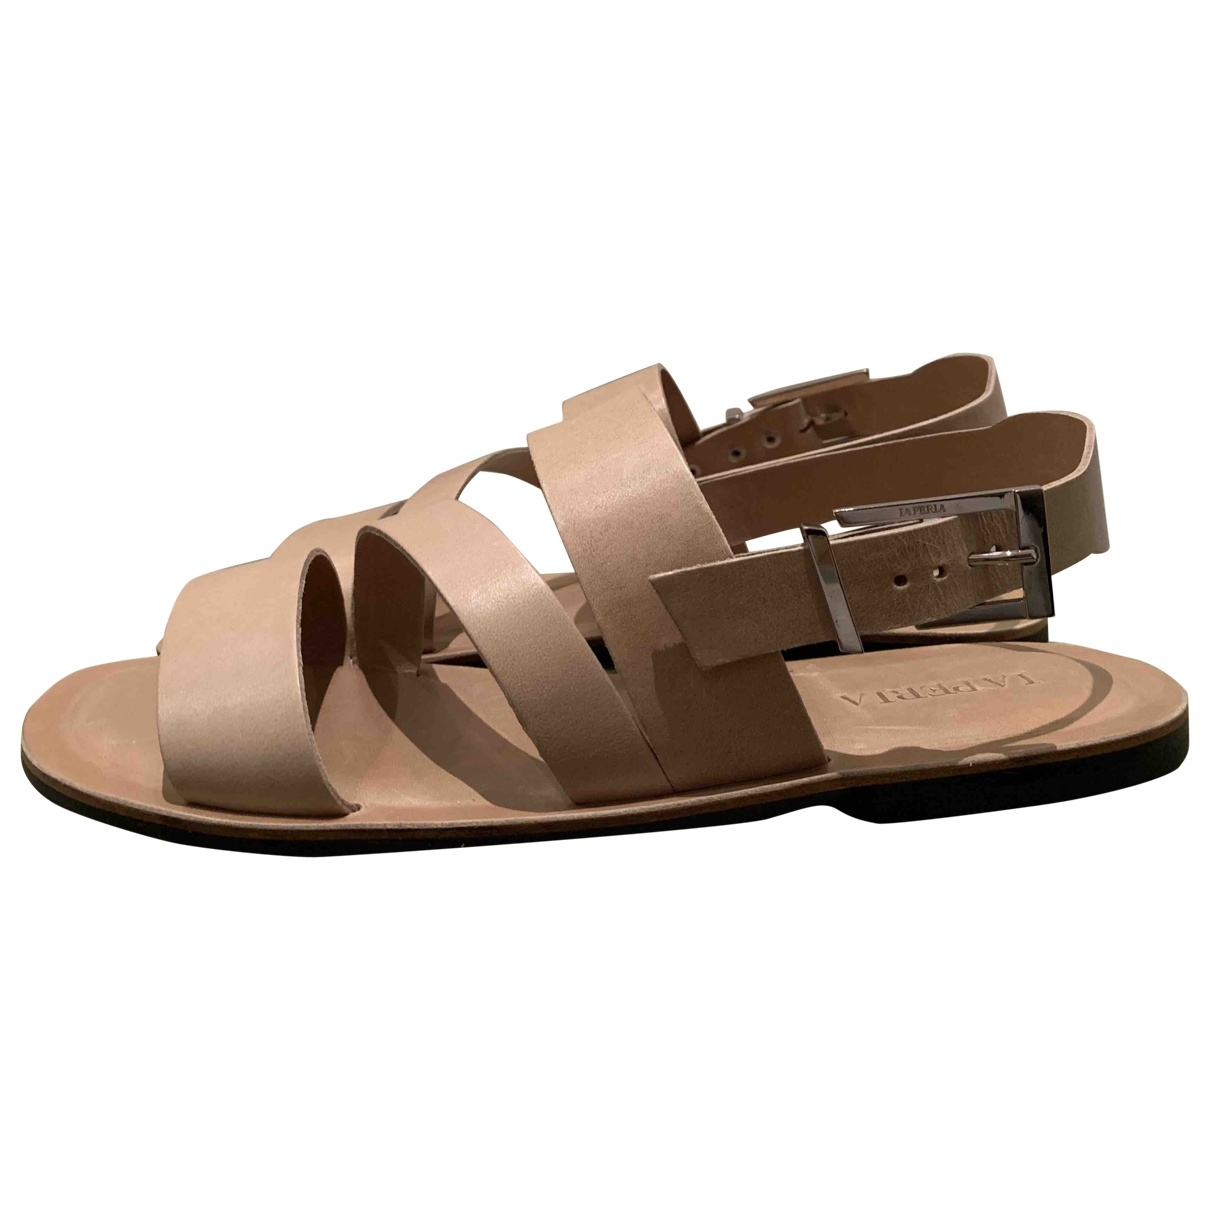 La Perla \N Beige Leather Sandals for Men 44 EU